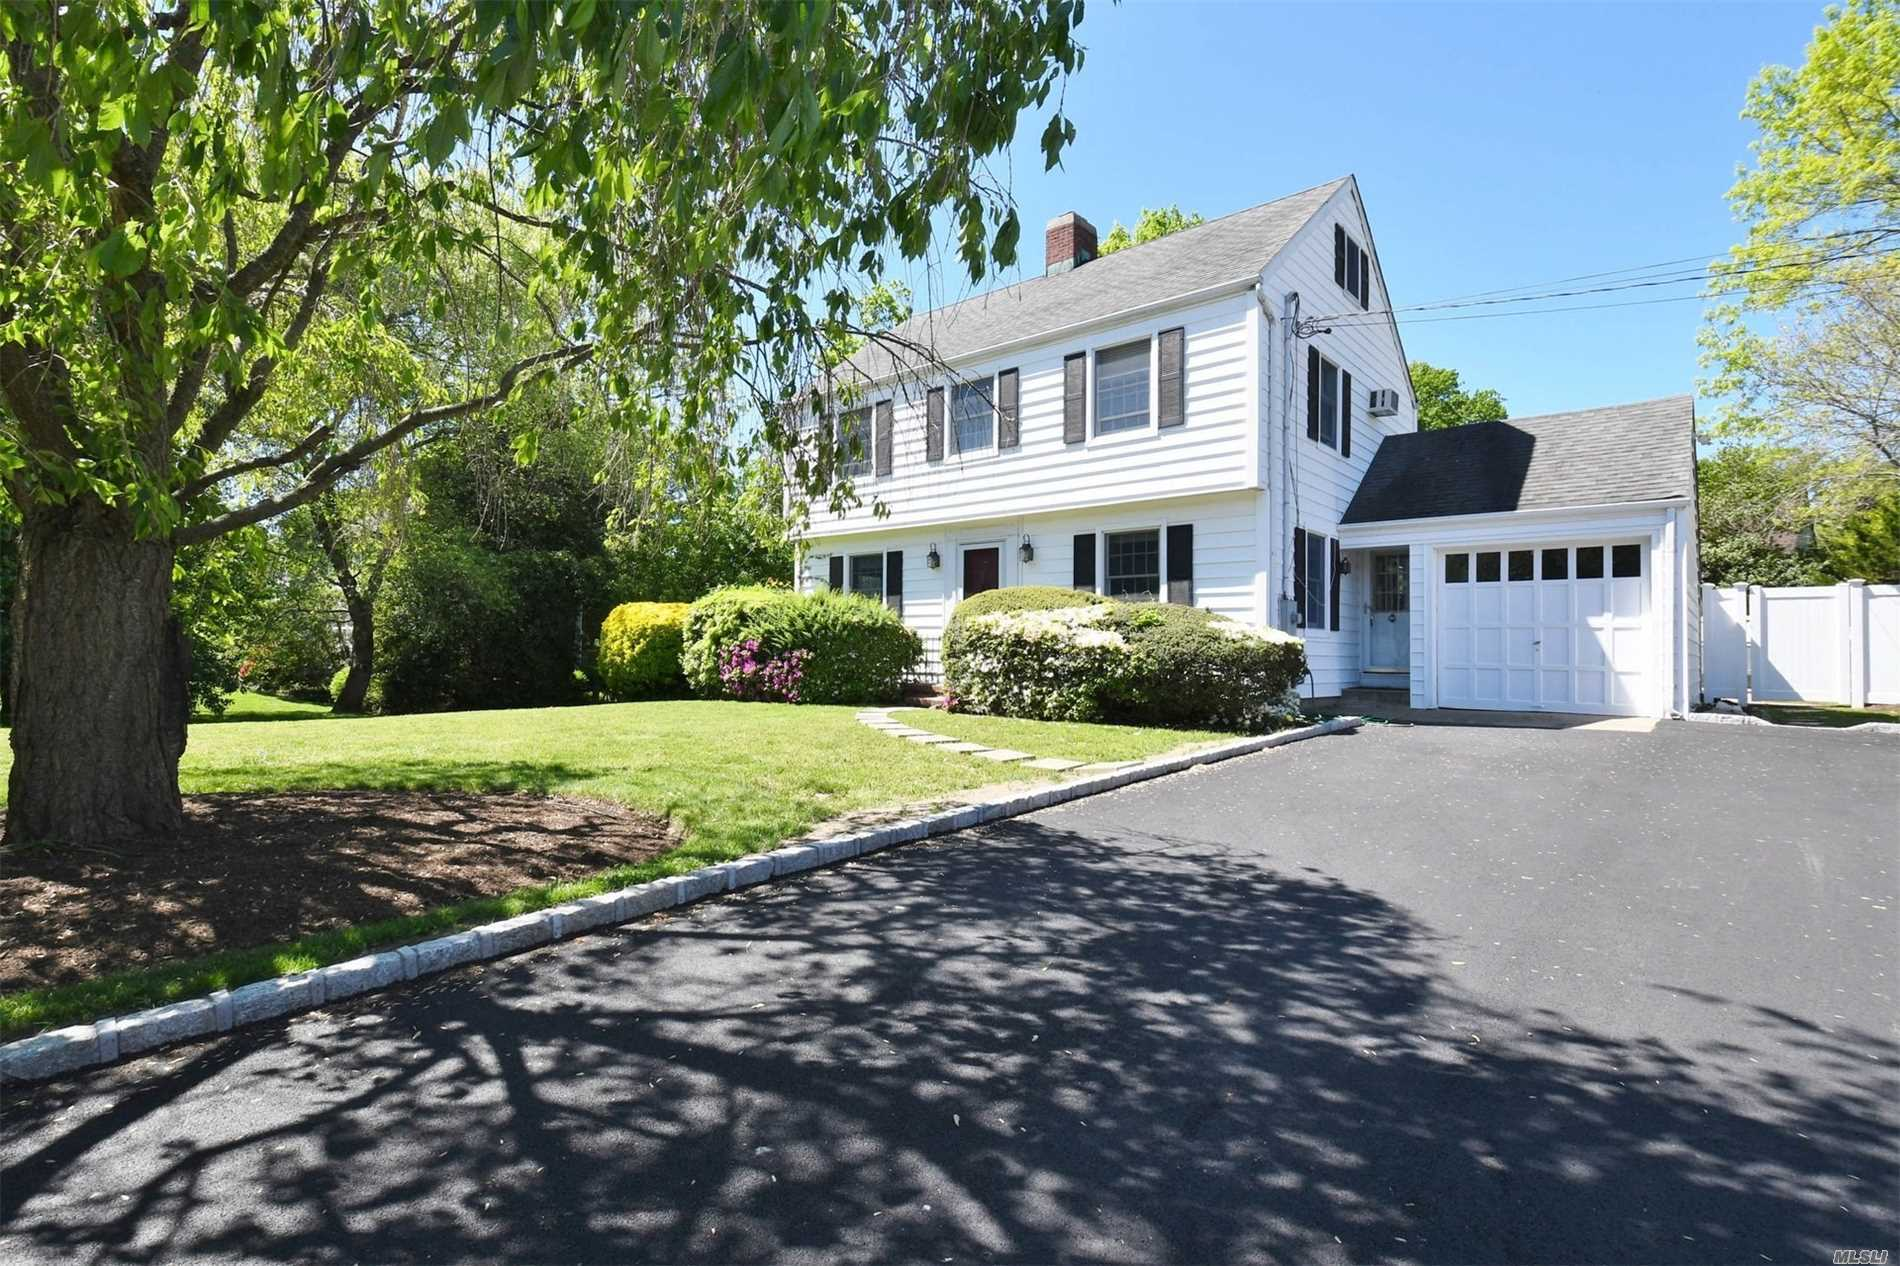 Classic Huntington Village Colonial with an Entertainer's property is a rare find. The fully fenced property offers a beautiful in ground pool, room to play & garden, privacy, and an oversized Sunroom to entertain guests. Inside find the charm of a classic updated colonial with chefs' kitchen, gleaming hardwood floors, original mil work, walk up attic, Anderson windows, 200 amp electric, lots of storage and more. Minutes to vibrant Huntington Village and the LiRR